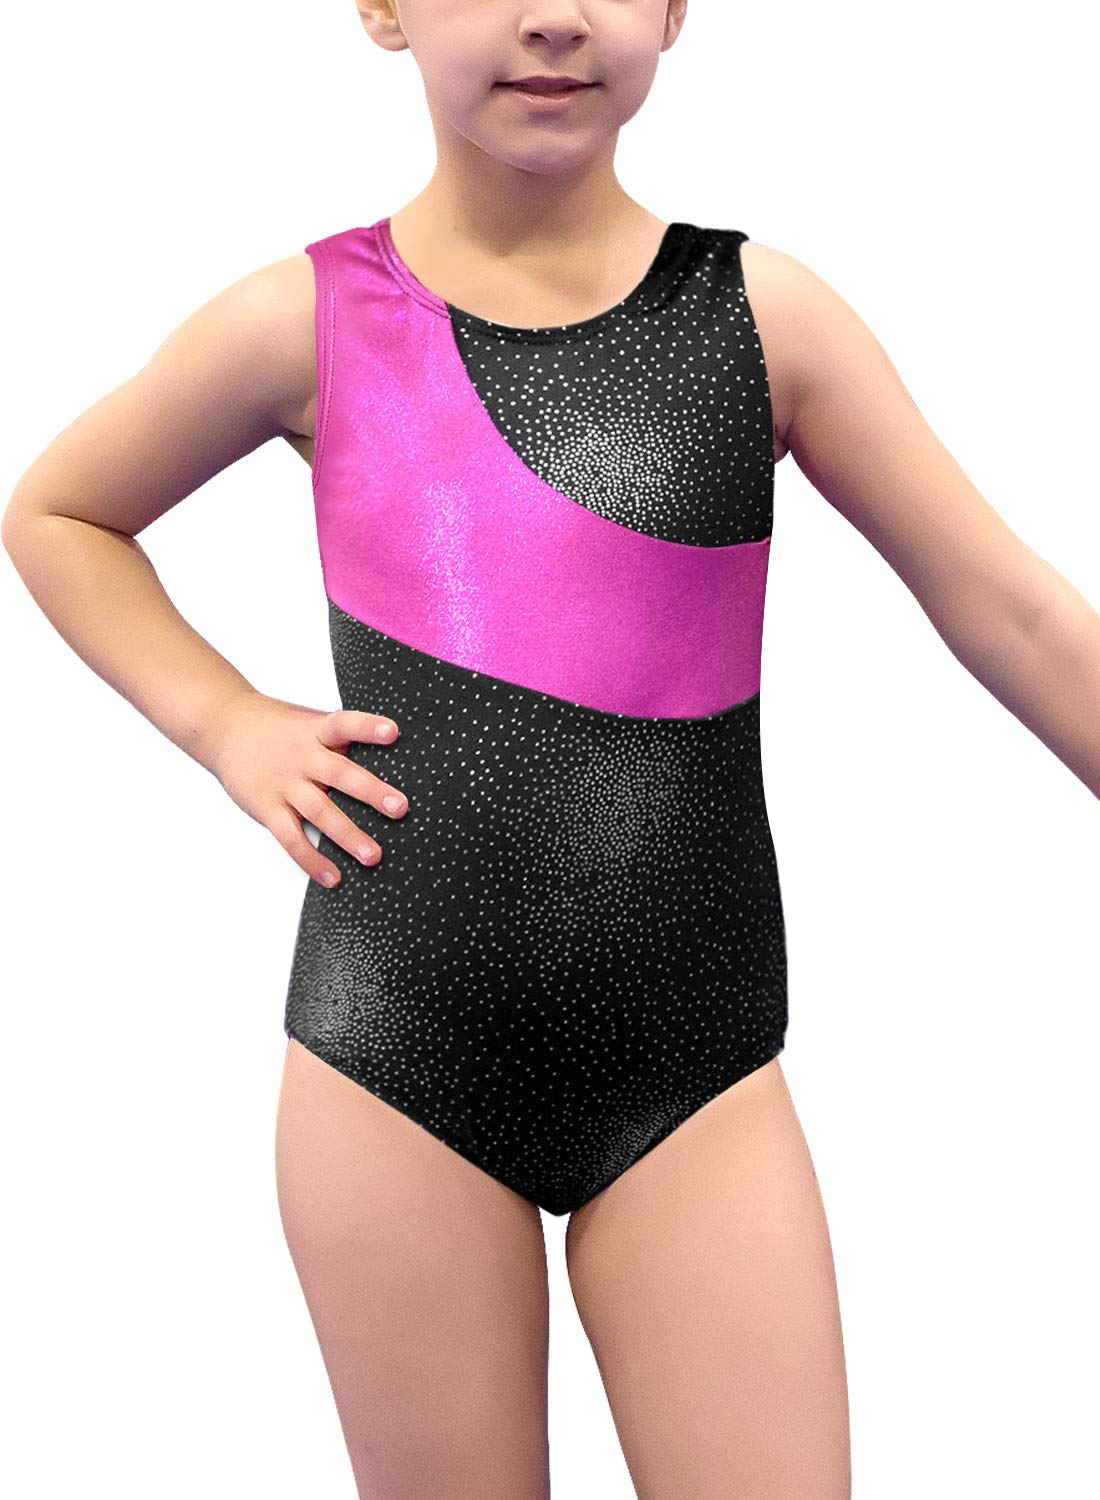 Gymnastics Leotard for Girls Stripe Starry Sky Long Sleeves Athletic Unitard for Little Girls 2-15 Years by DAXIANG